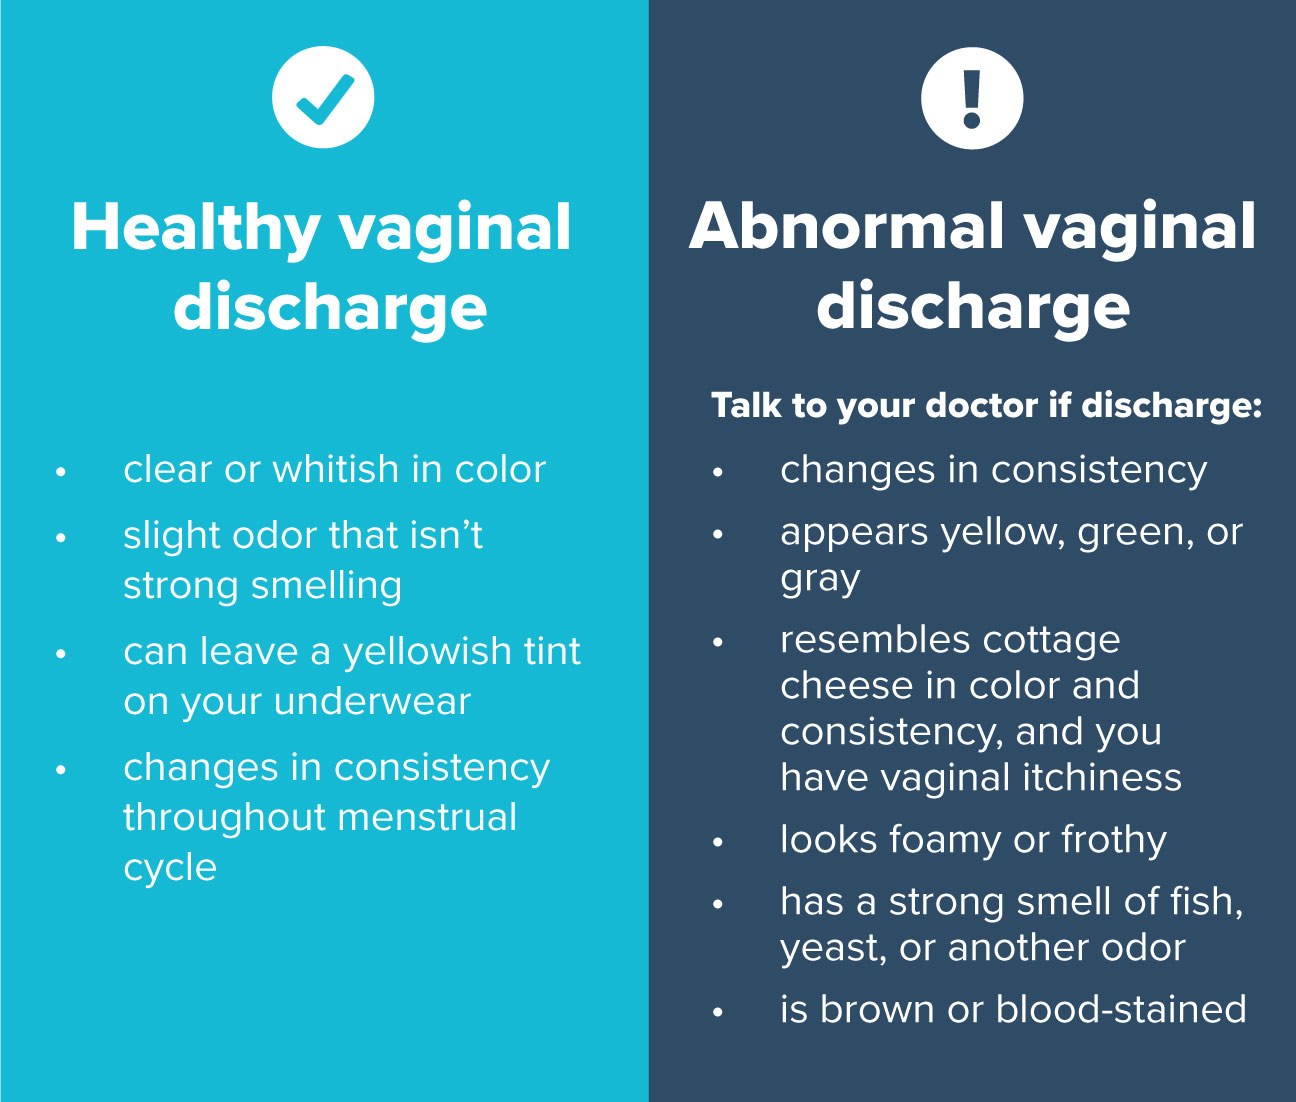 Symptoms excessive watery yellowish vaginal discharge